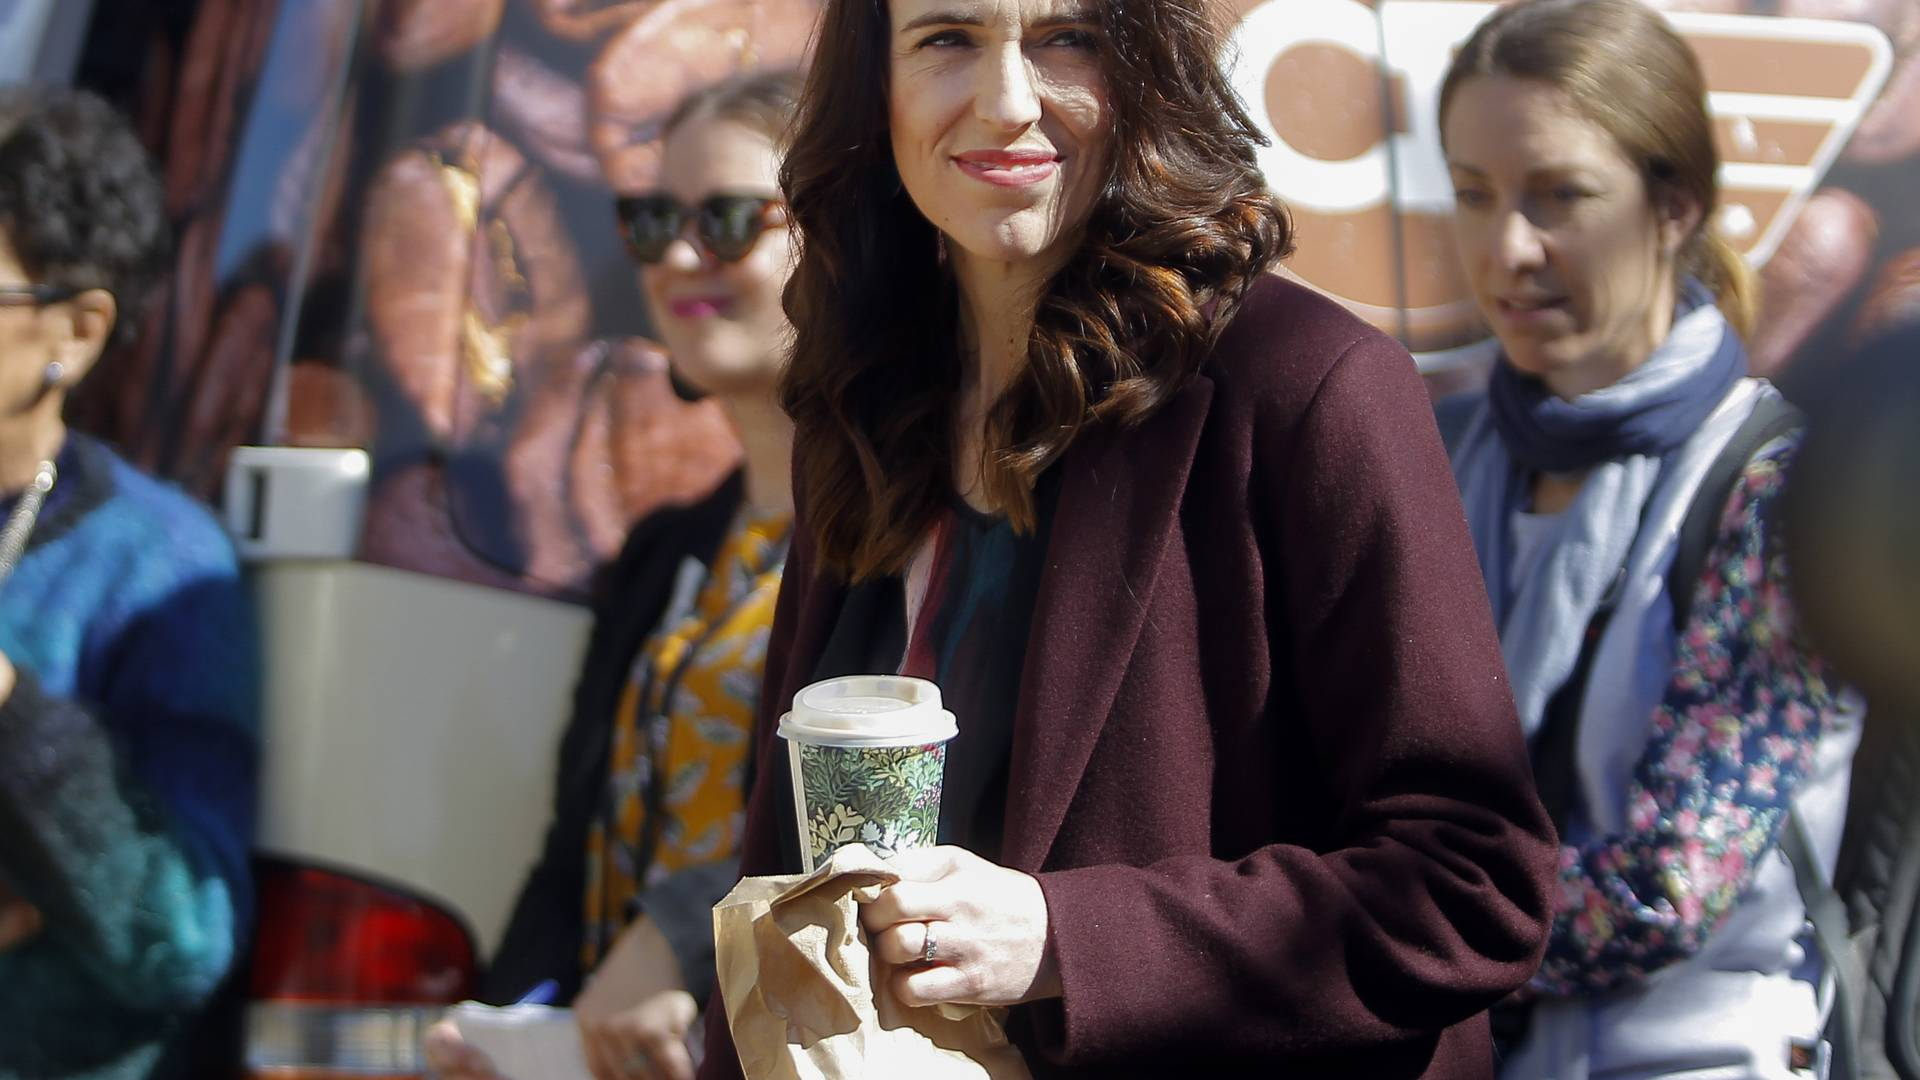 New Zealand's Prime Minister Jacinda Ardern carries her lunch during an event in Welcome Bay near Tauranga, New Zealand, Tuesday, Sept. 8, 2020. New Zealand will hold a general election on Oct 17. (George Novak/Bay of Plenty Time via AP)